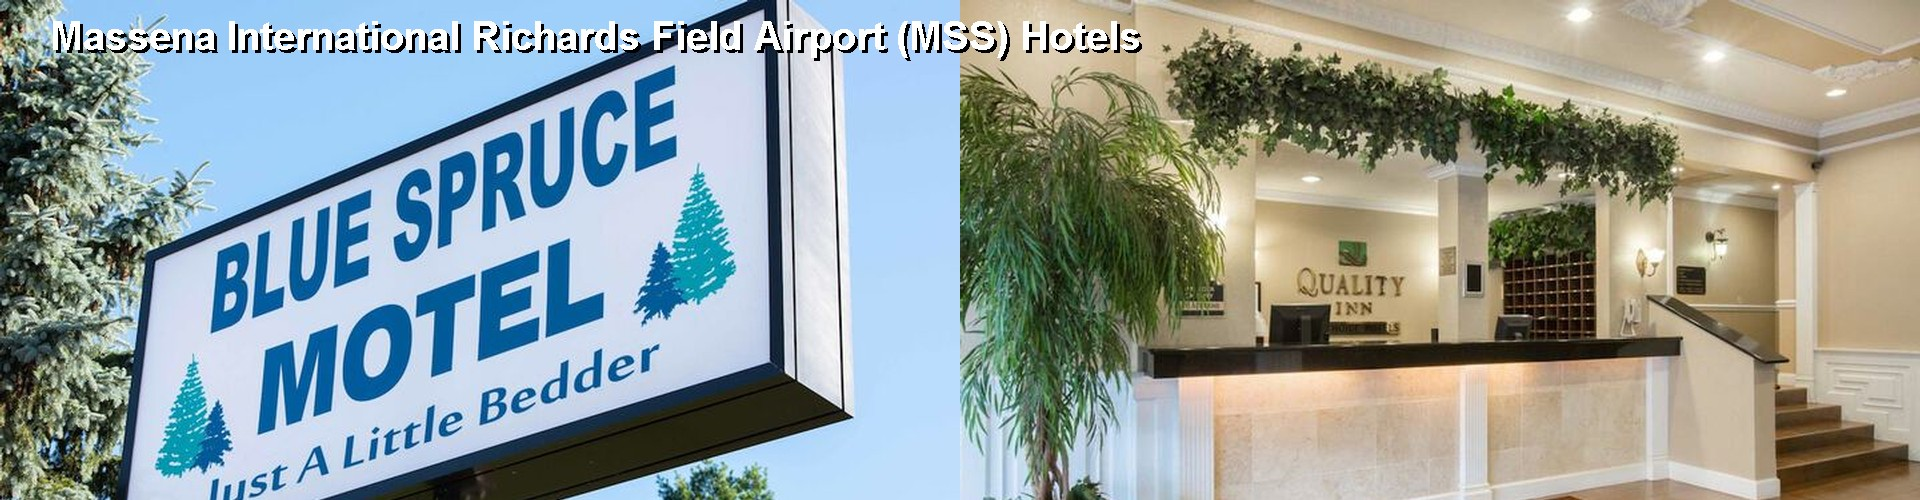 5 Best Hotels near Massena International Richards Field Airport (MSS)